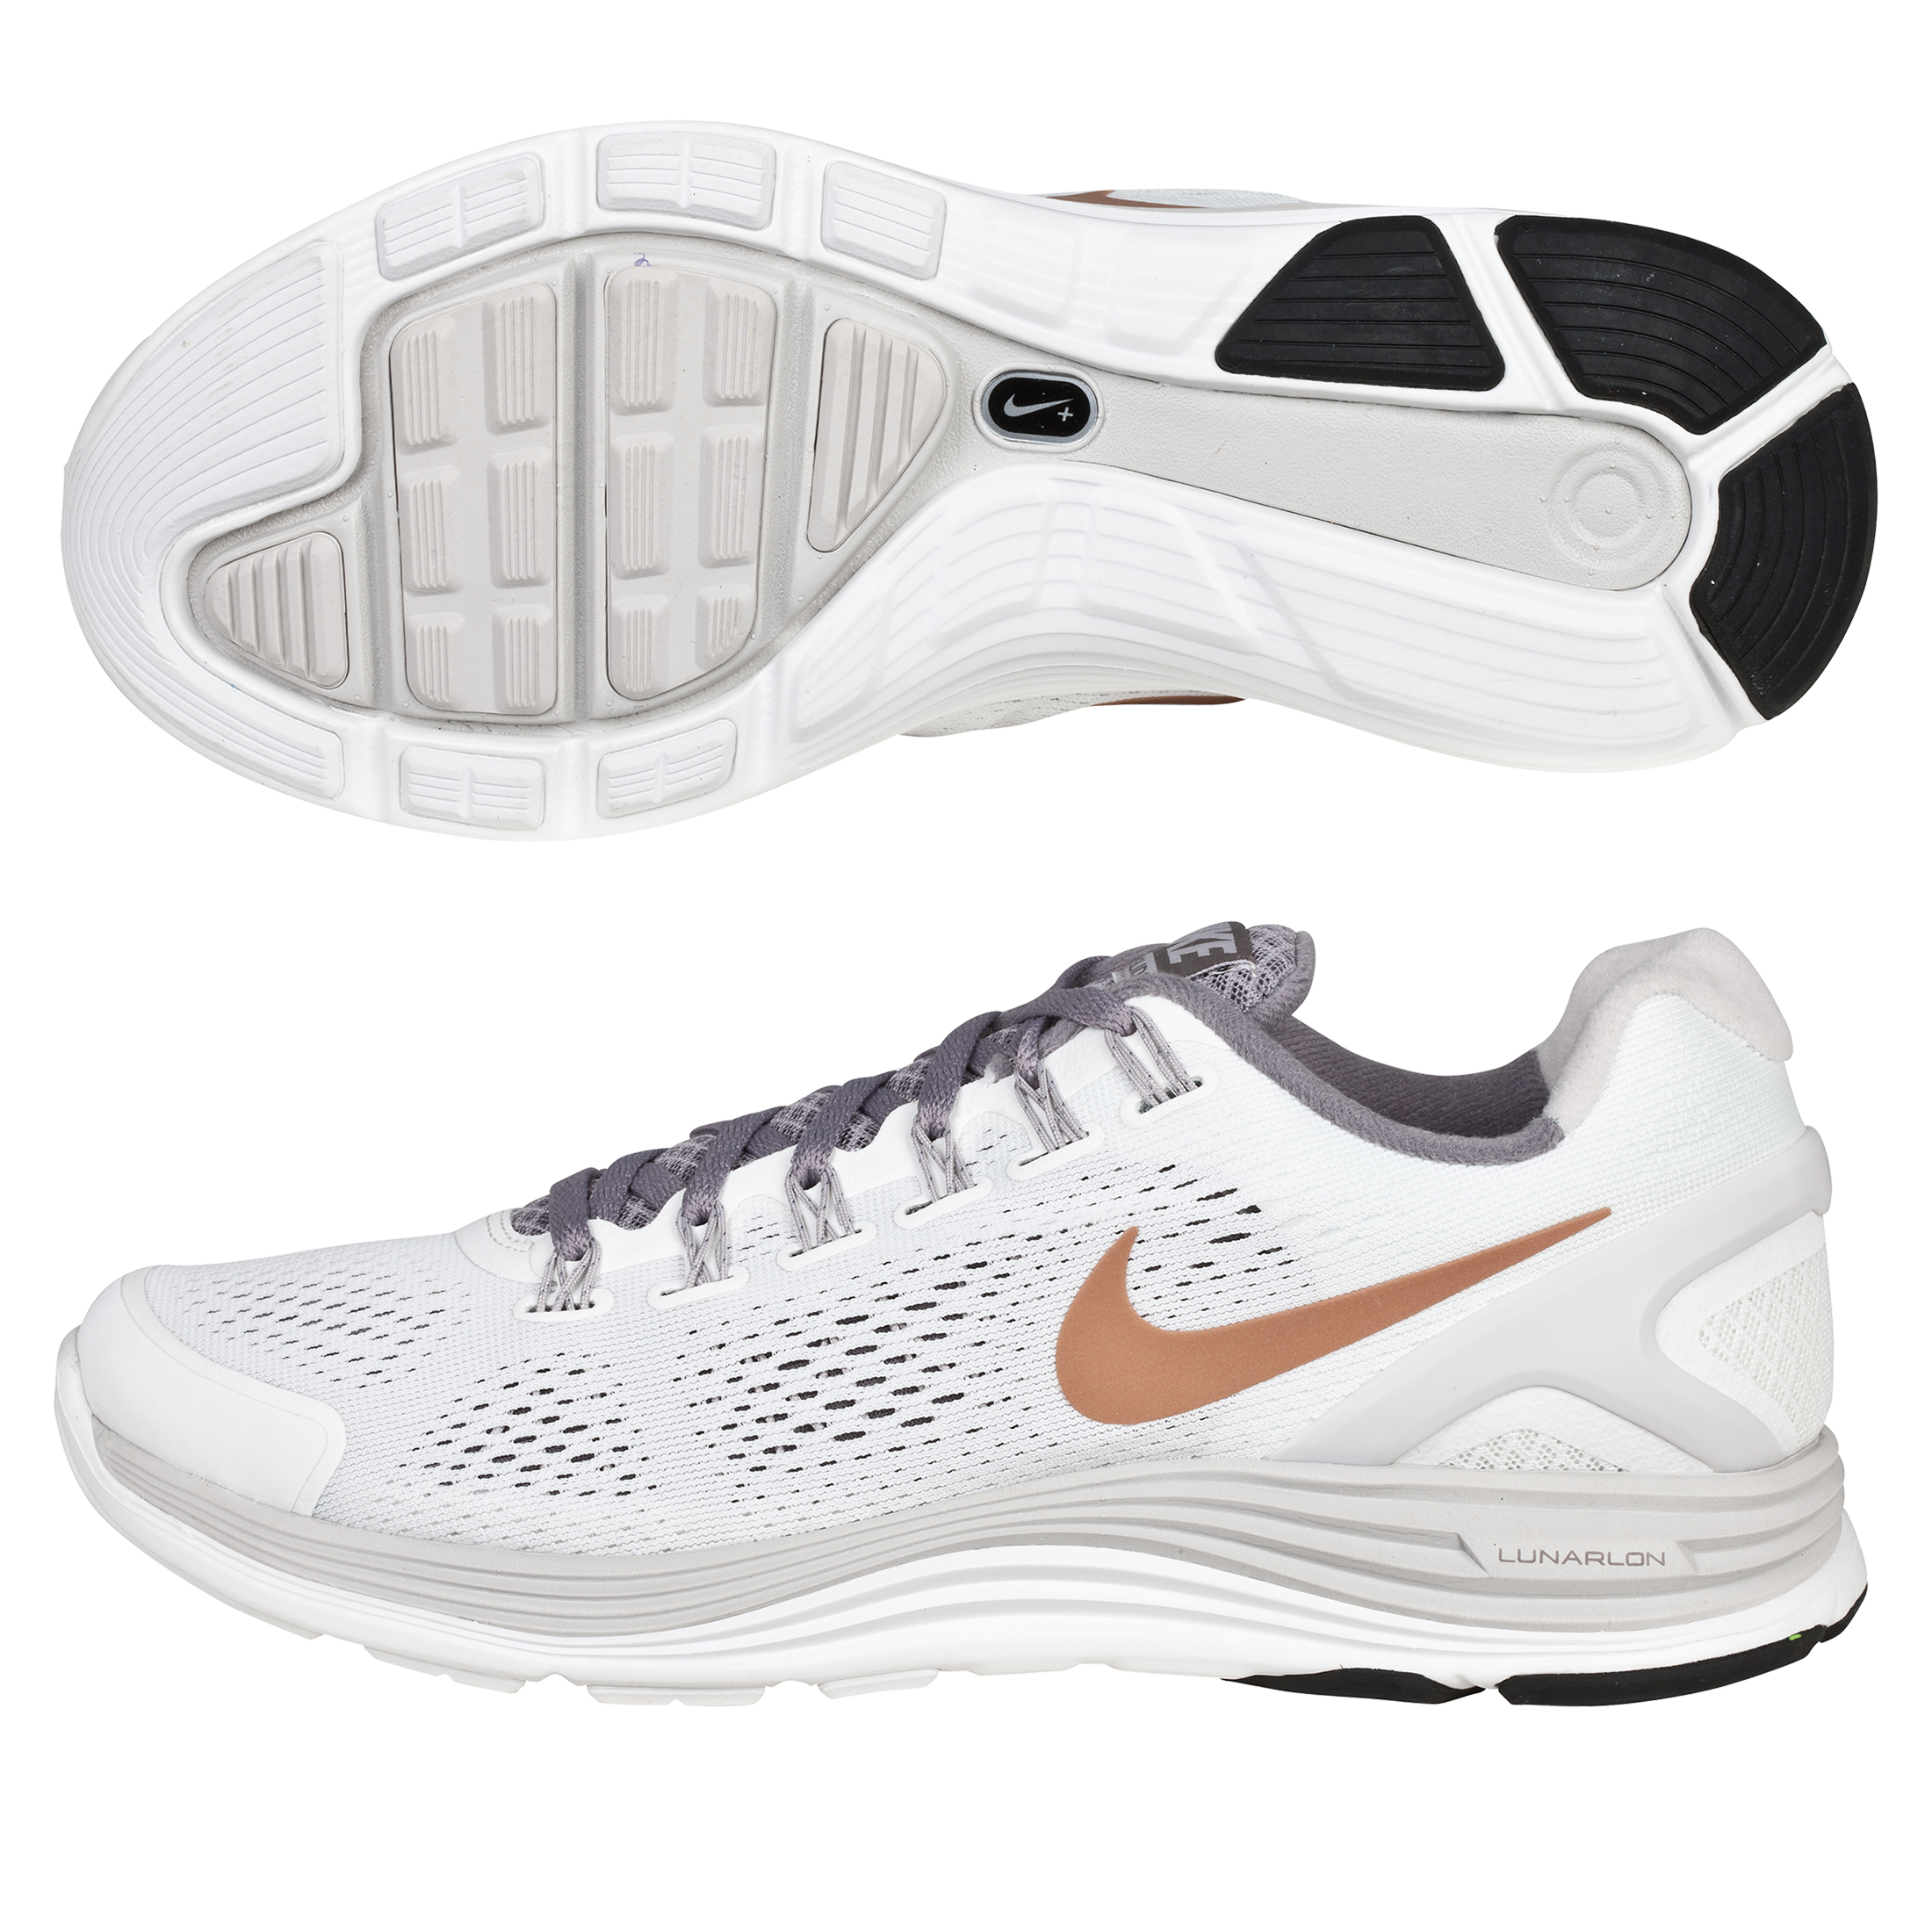 Nike Lunarglide +4 Stability Trainer - Summit White/Sport Grey - Womens